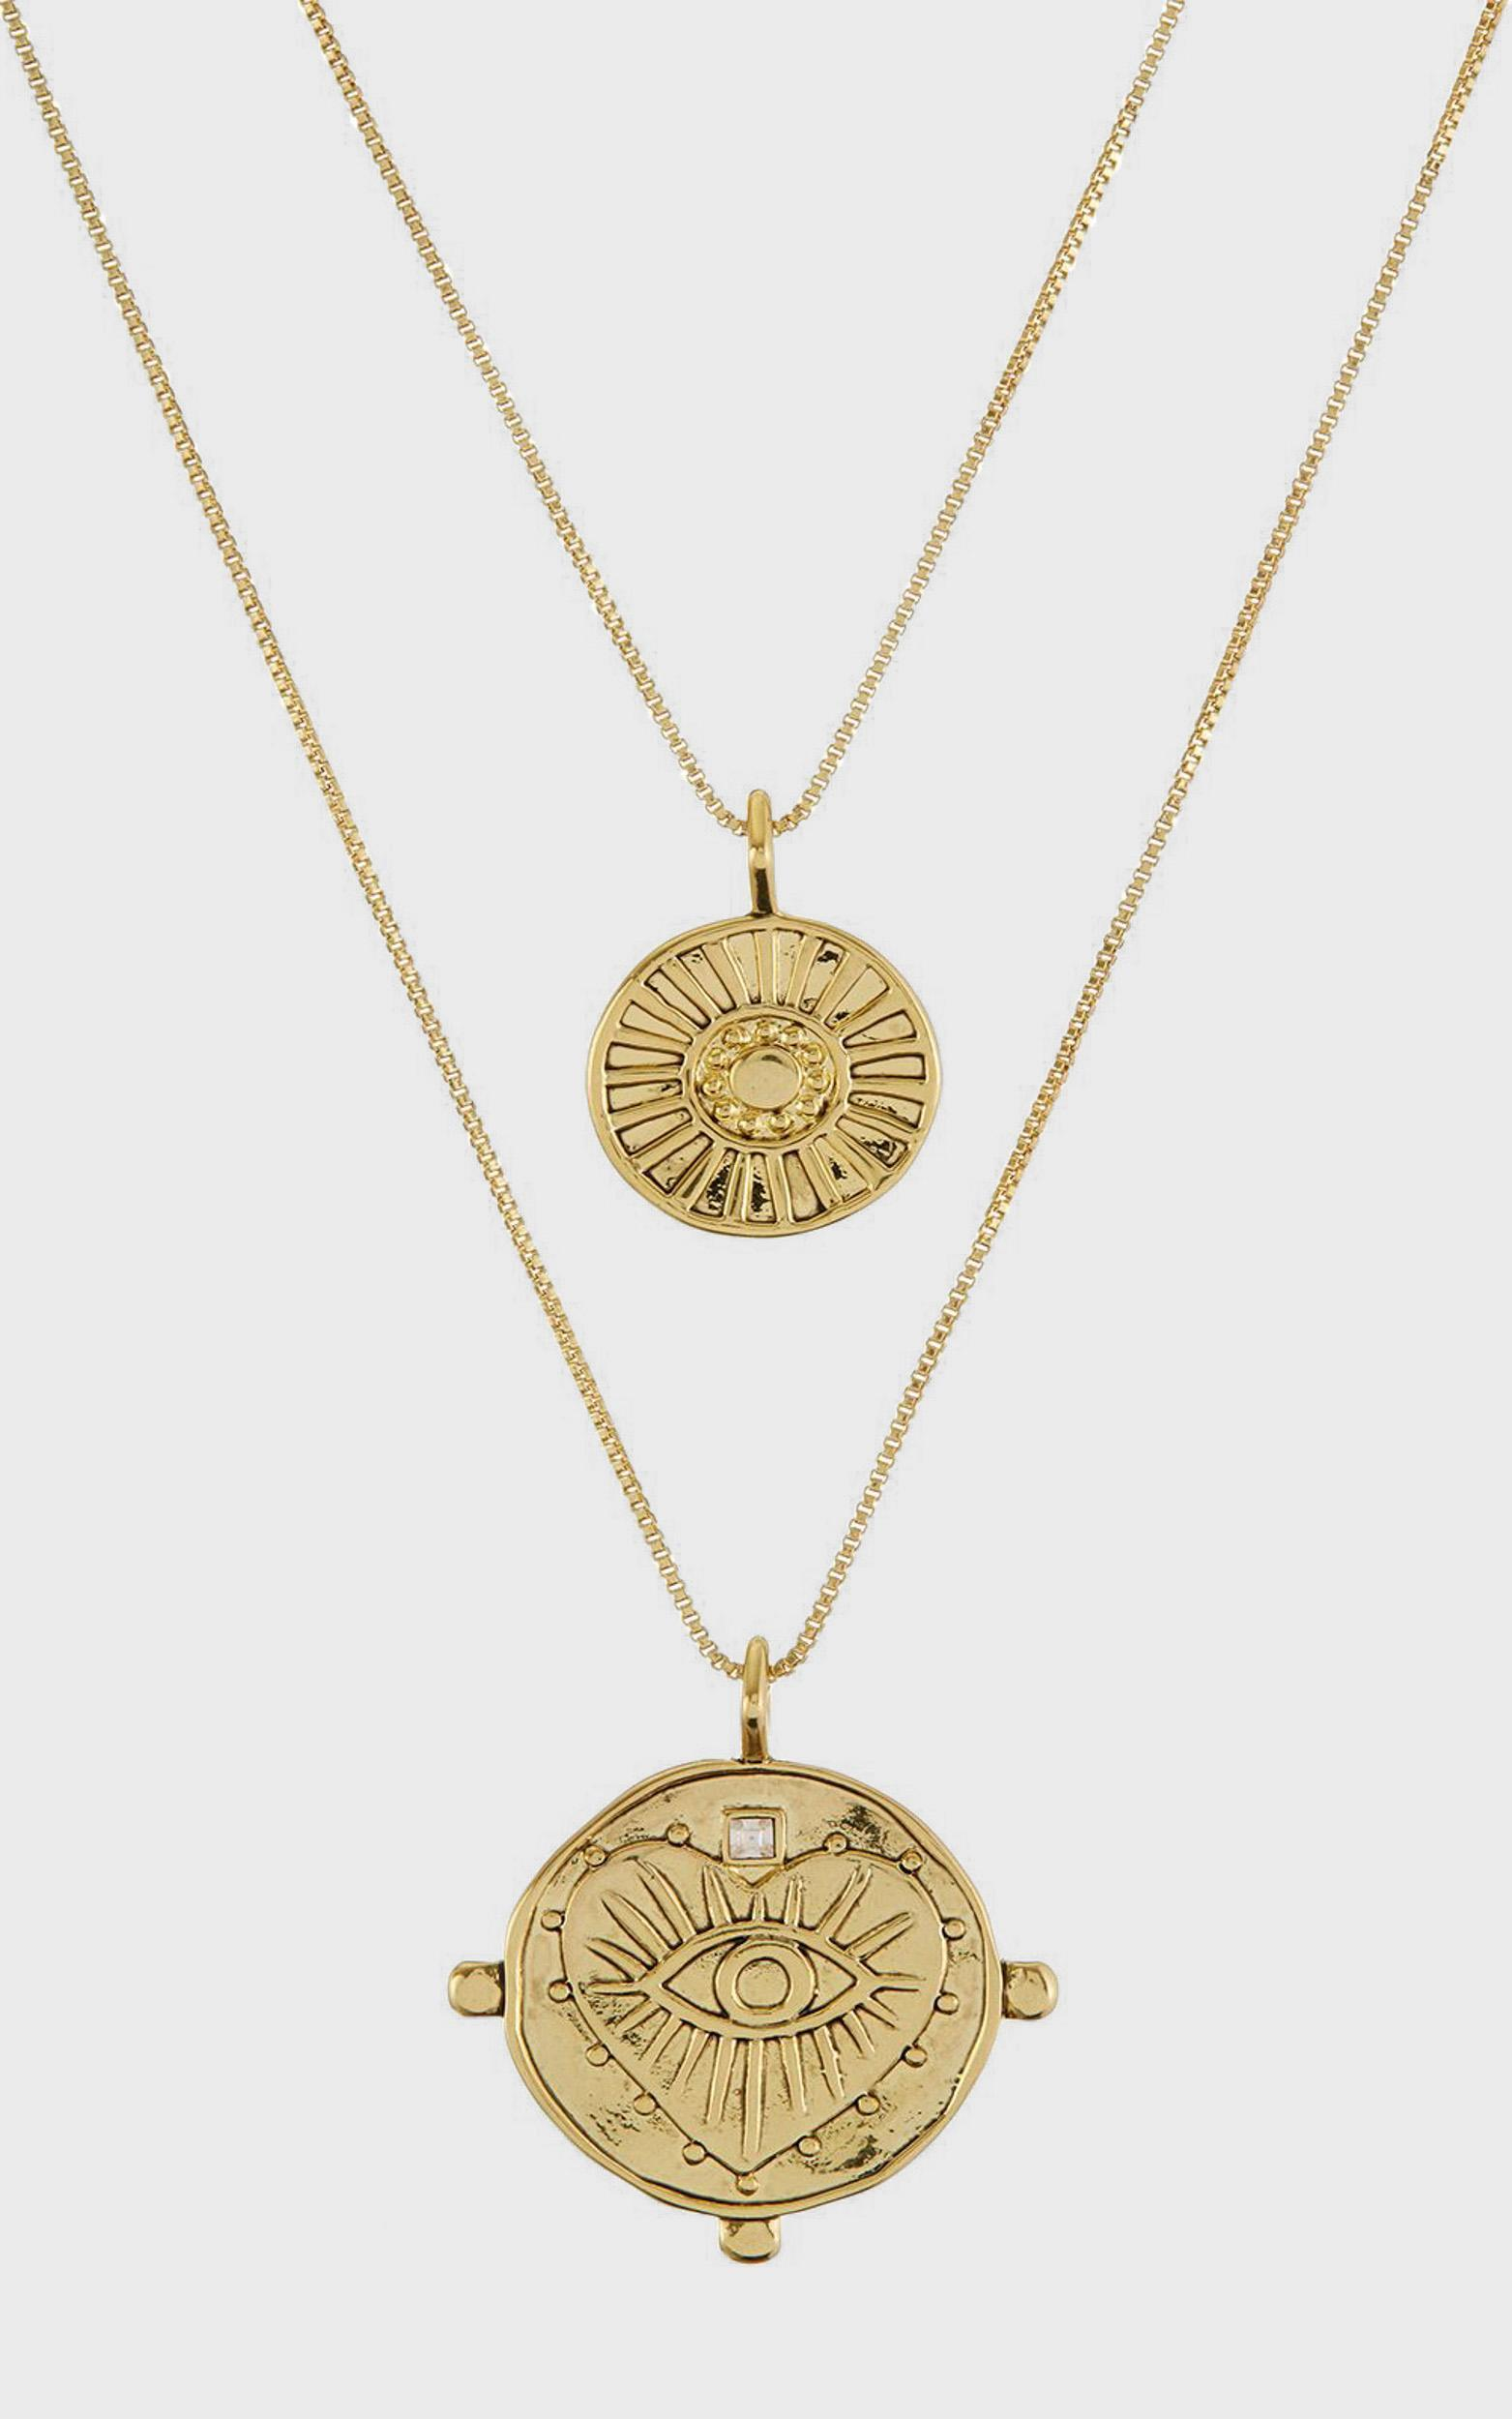 Luv Aj - The Evil Eye Double Coin Necklace in Gold, , hi-res image number null